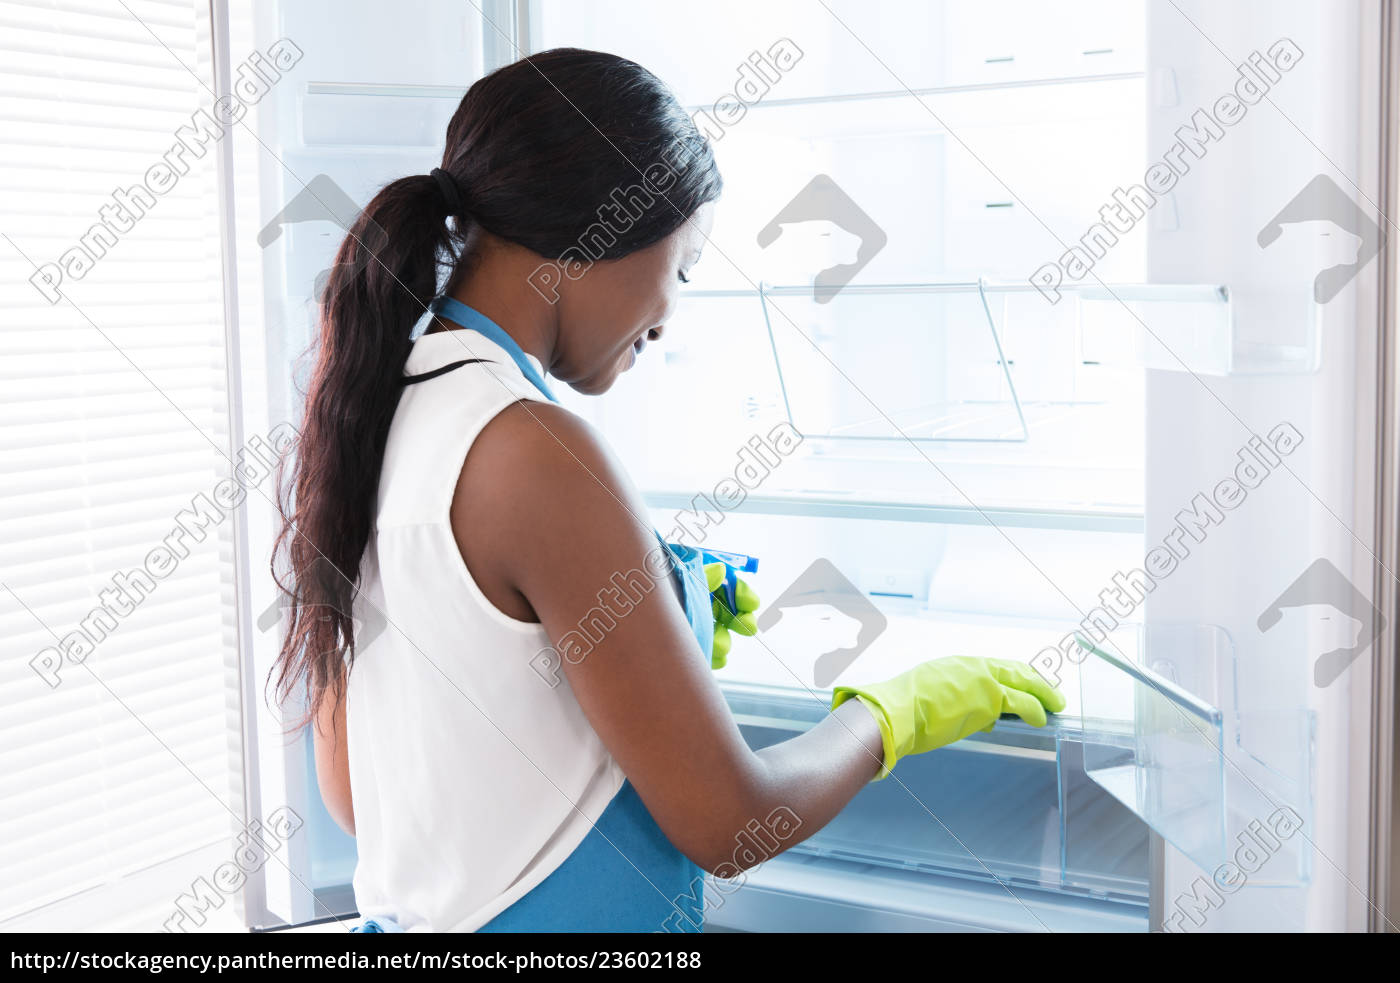 african, woman, cleaning, refrigerator - 23602188